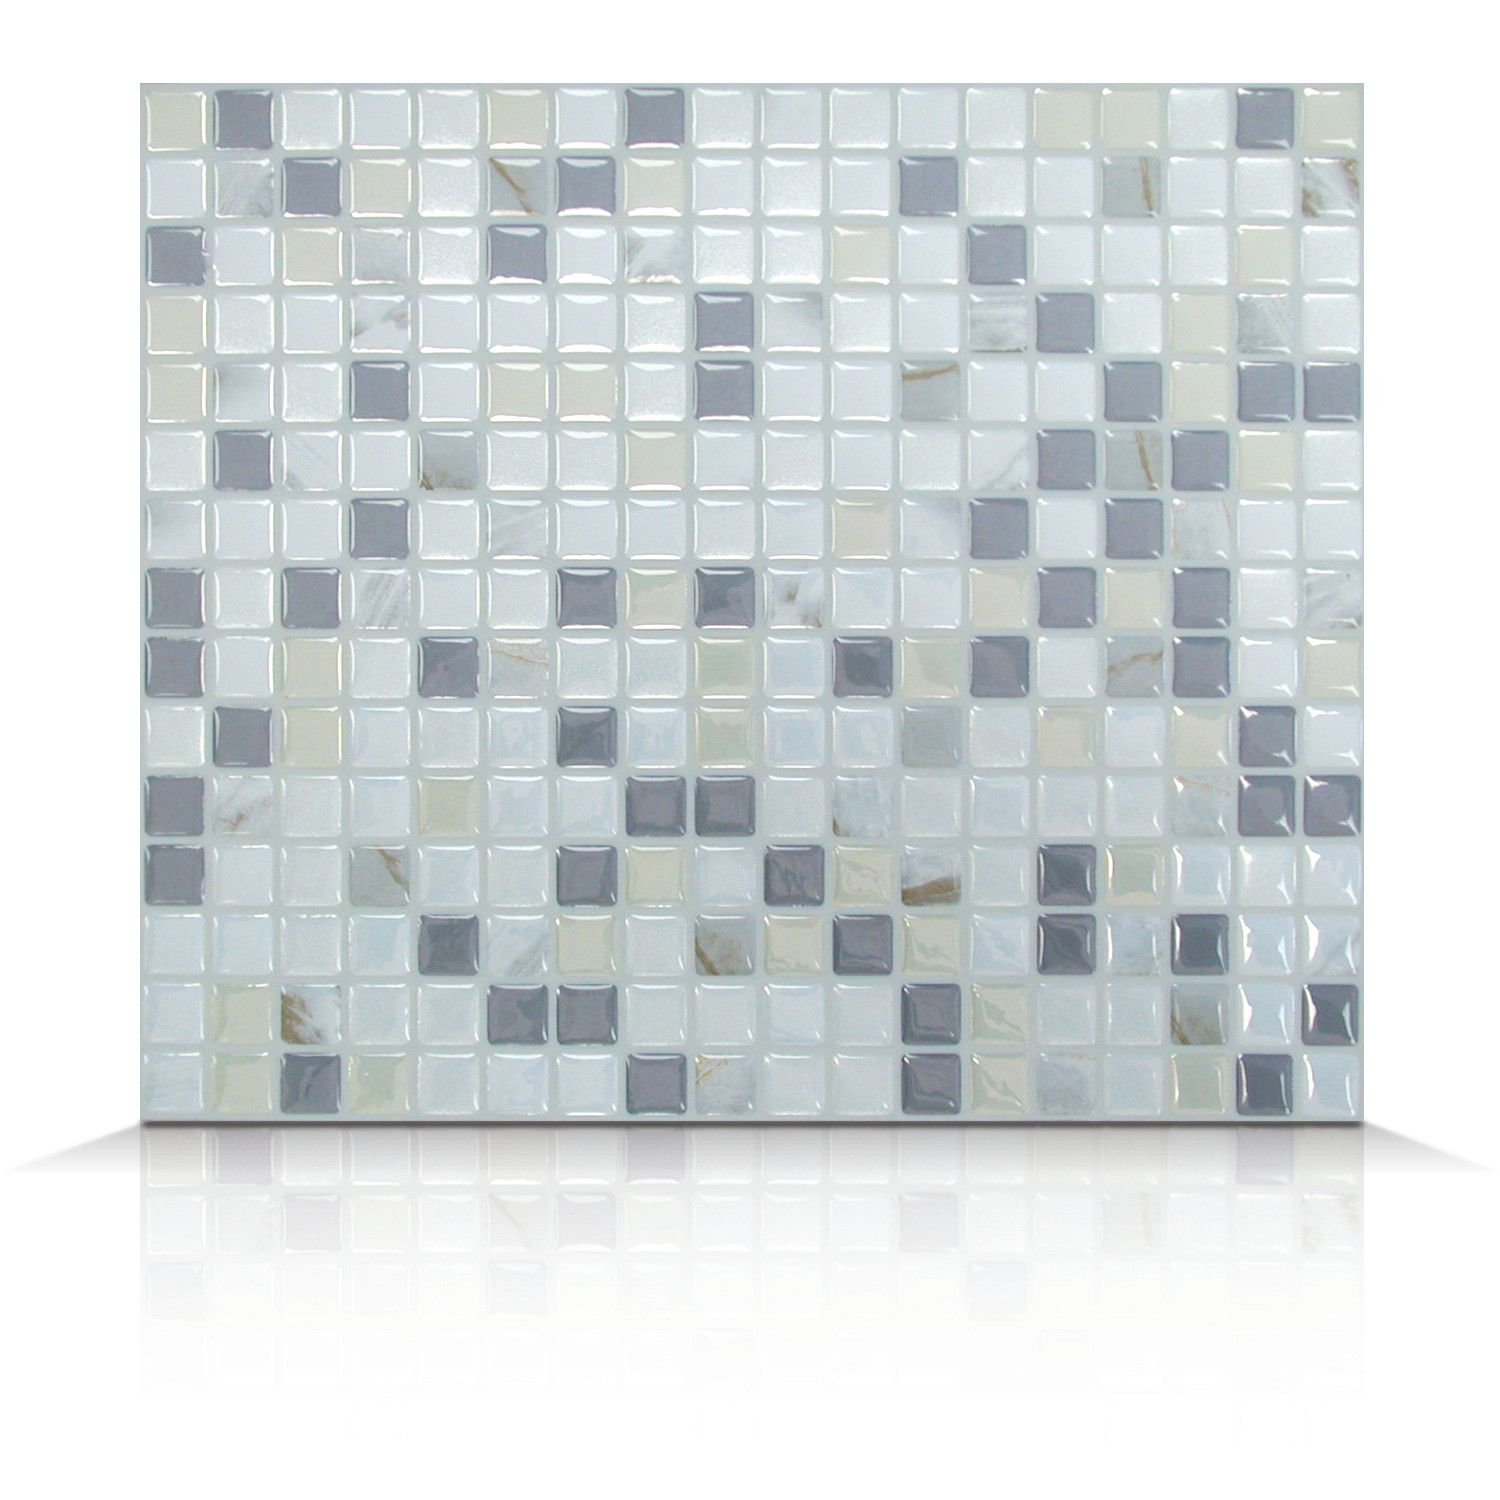 - Smart Tiles Mosaik Self Adhesive High-Gloss Mosaic In Pearl & Gray &  Reviews Wayfair Supply Smart Tiles, Self Adhesive Wall Tiles, Tiles